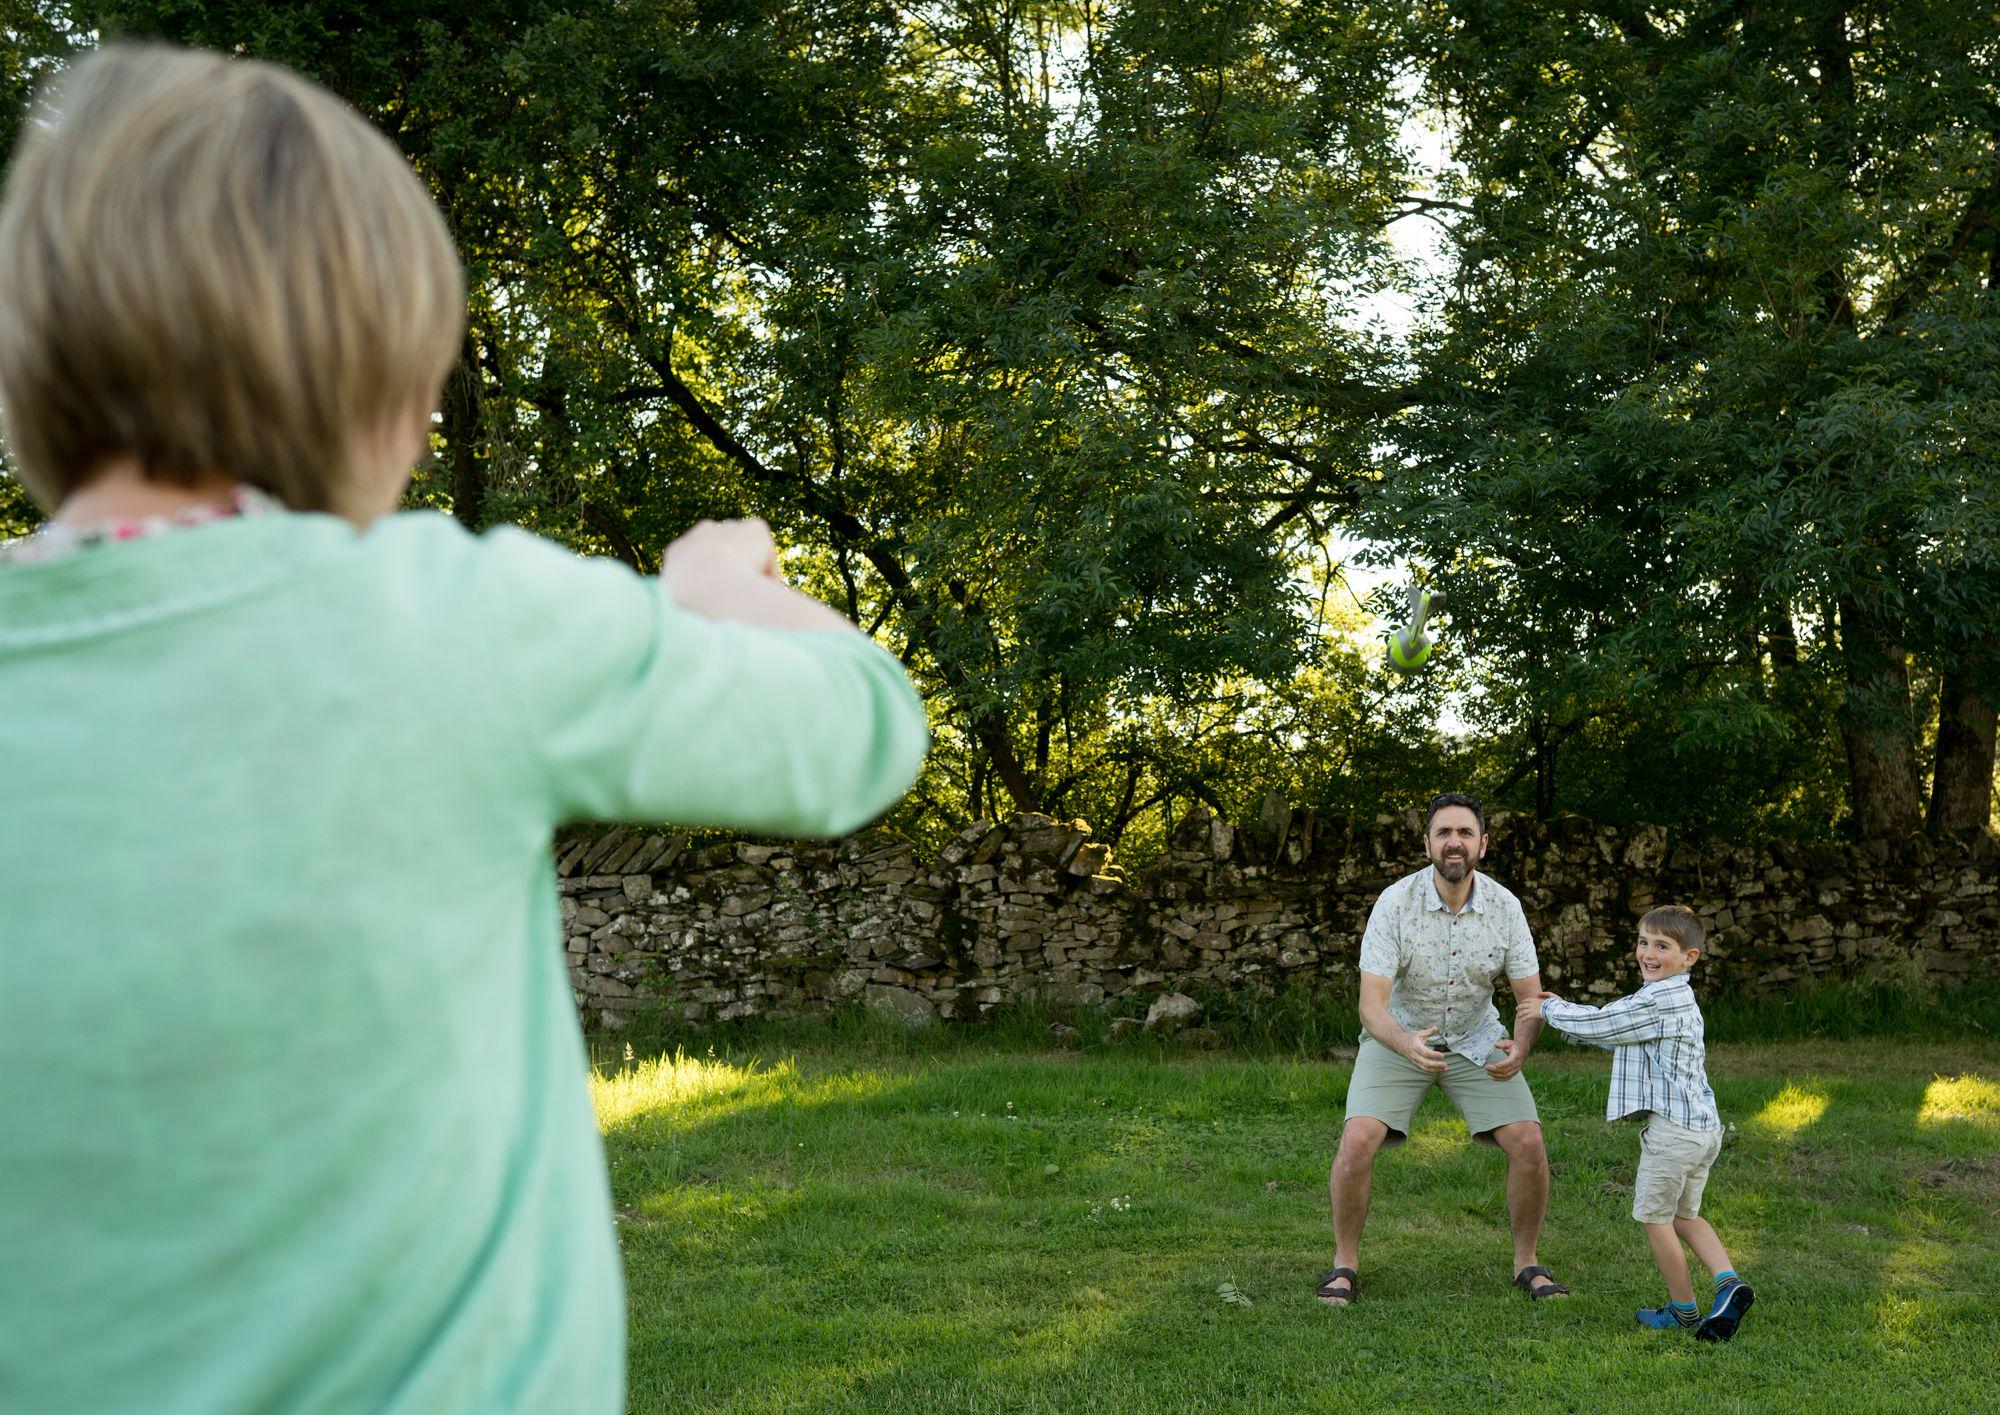 Matlock Camping | Best campsites in Matlock, Derbyshire